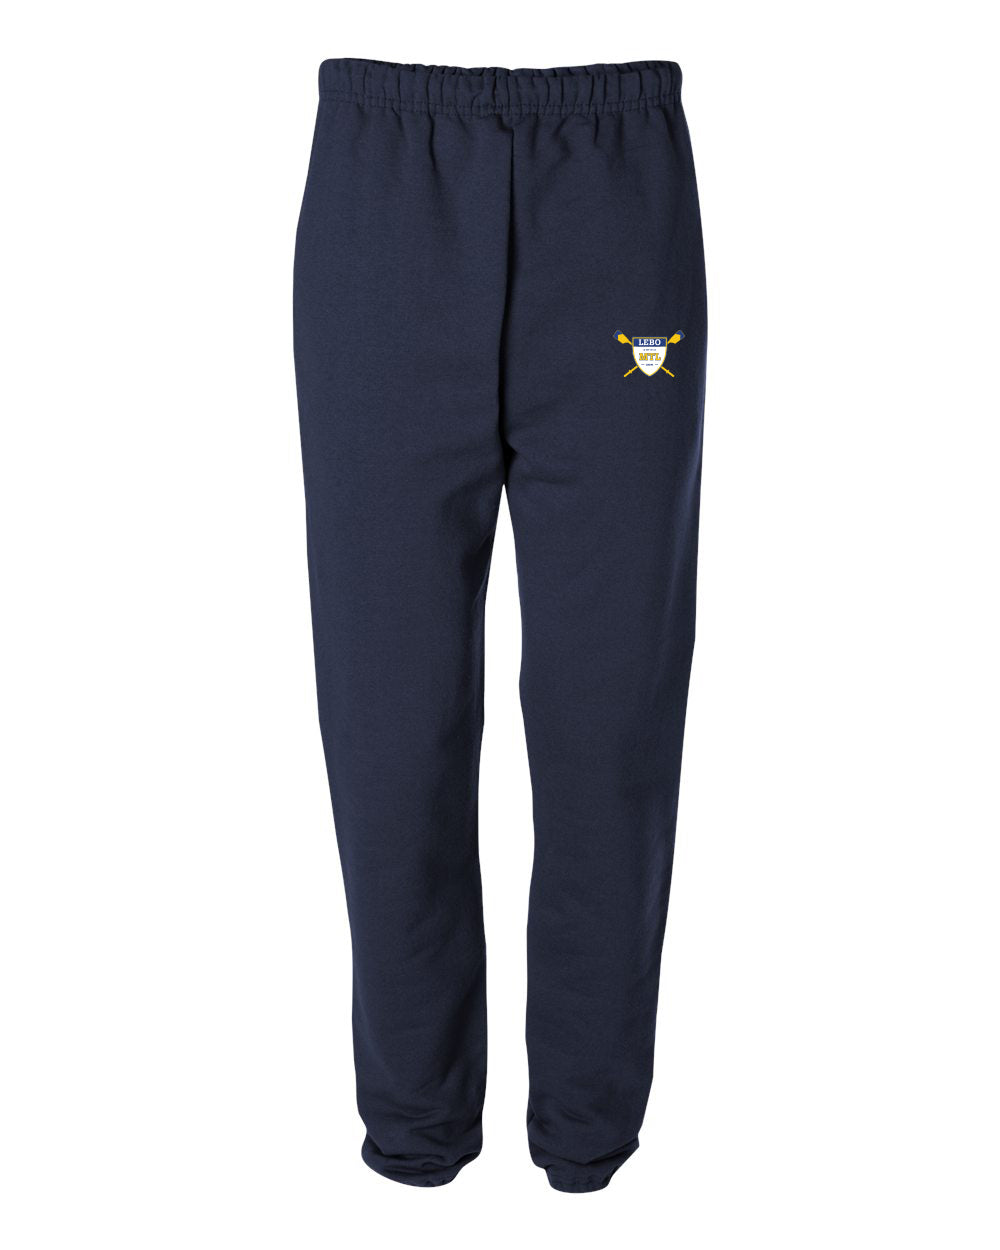 Team MT Lebanon Rowing Sweatpants